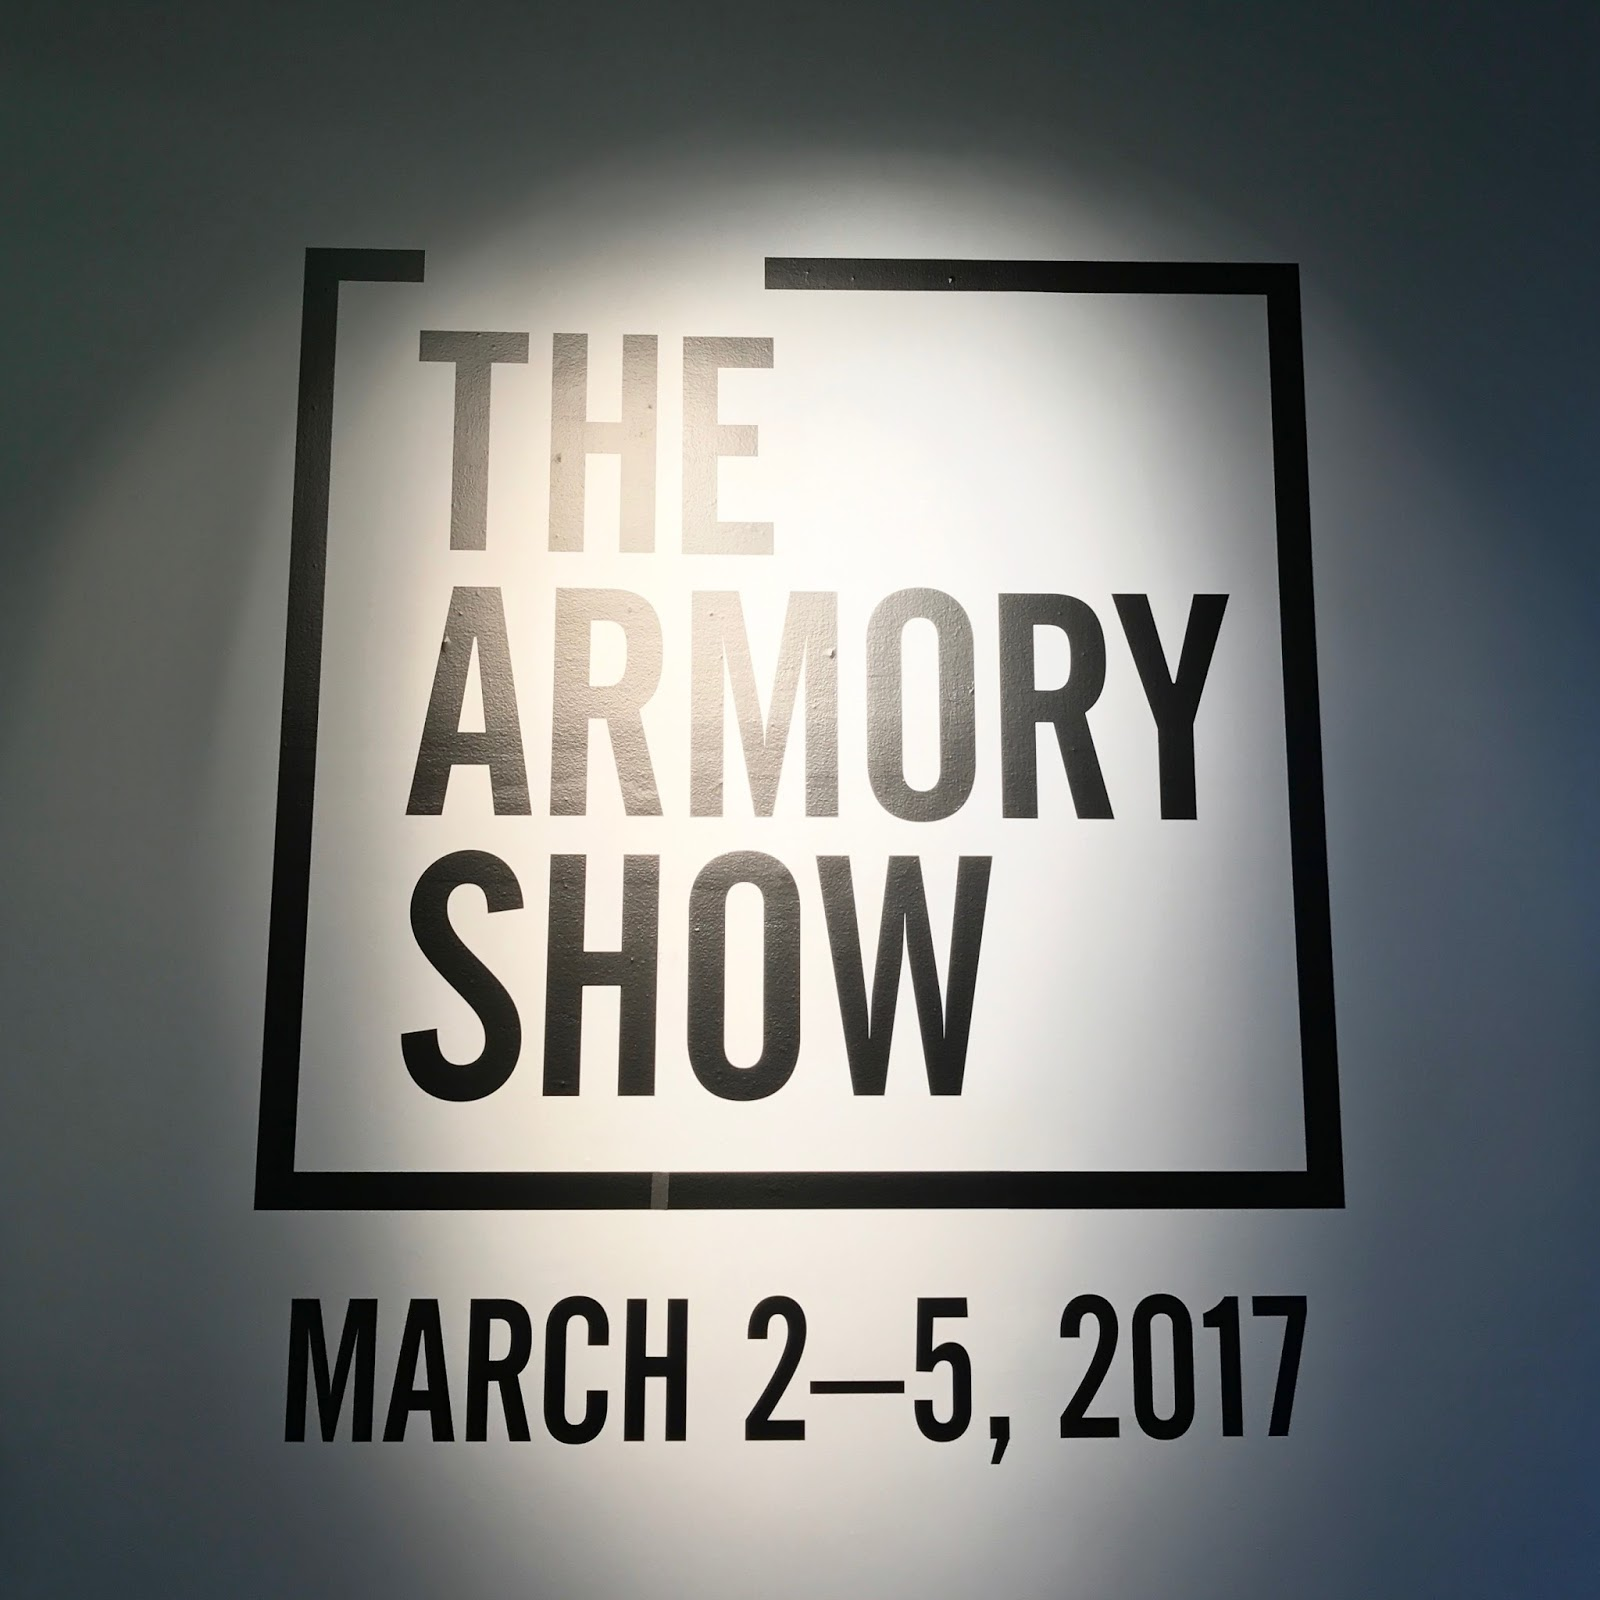 The Armory Show 2-5 March 2017 | New York